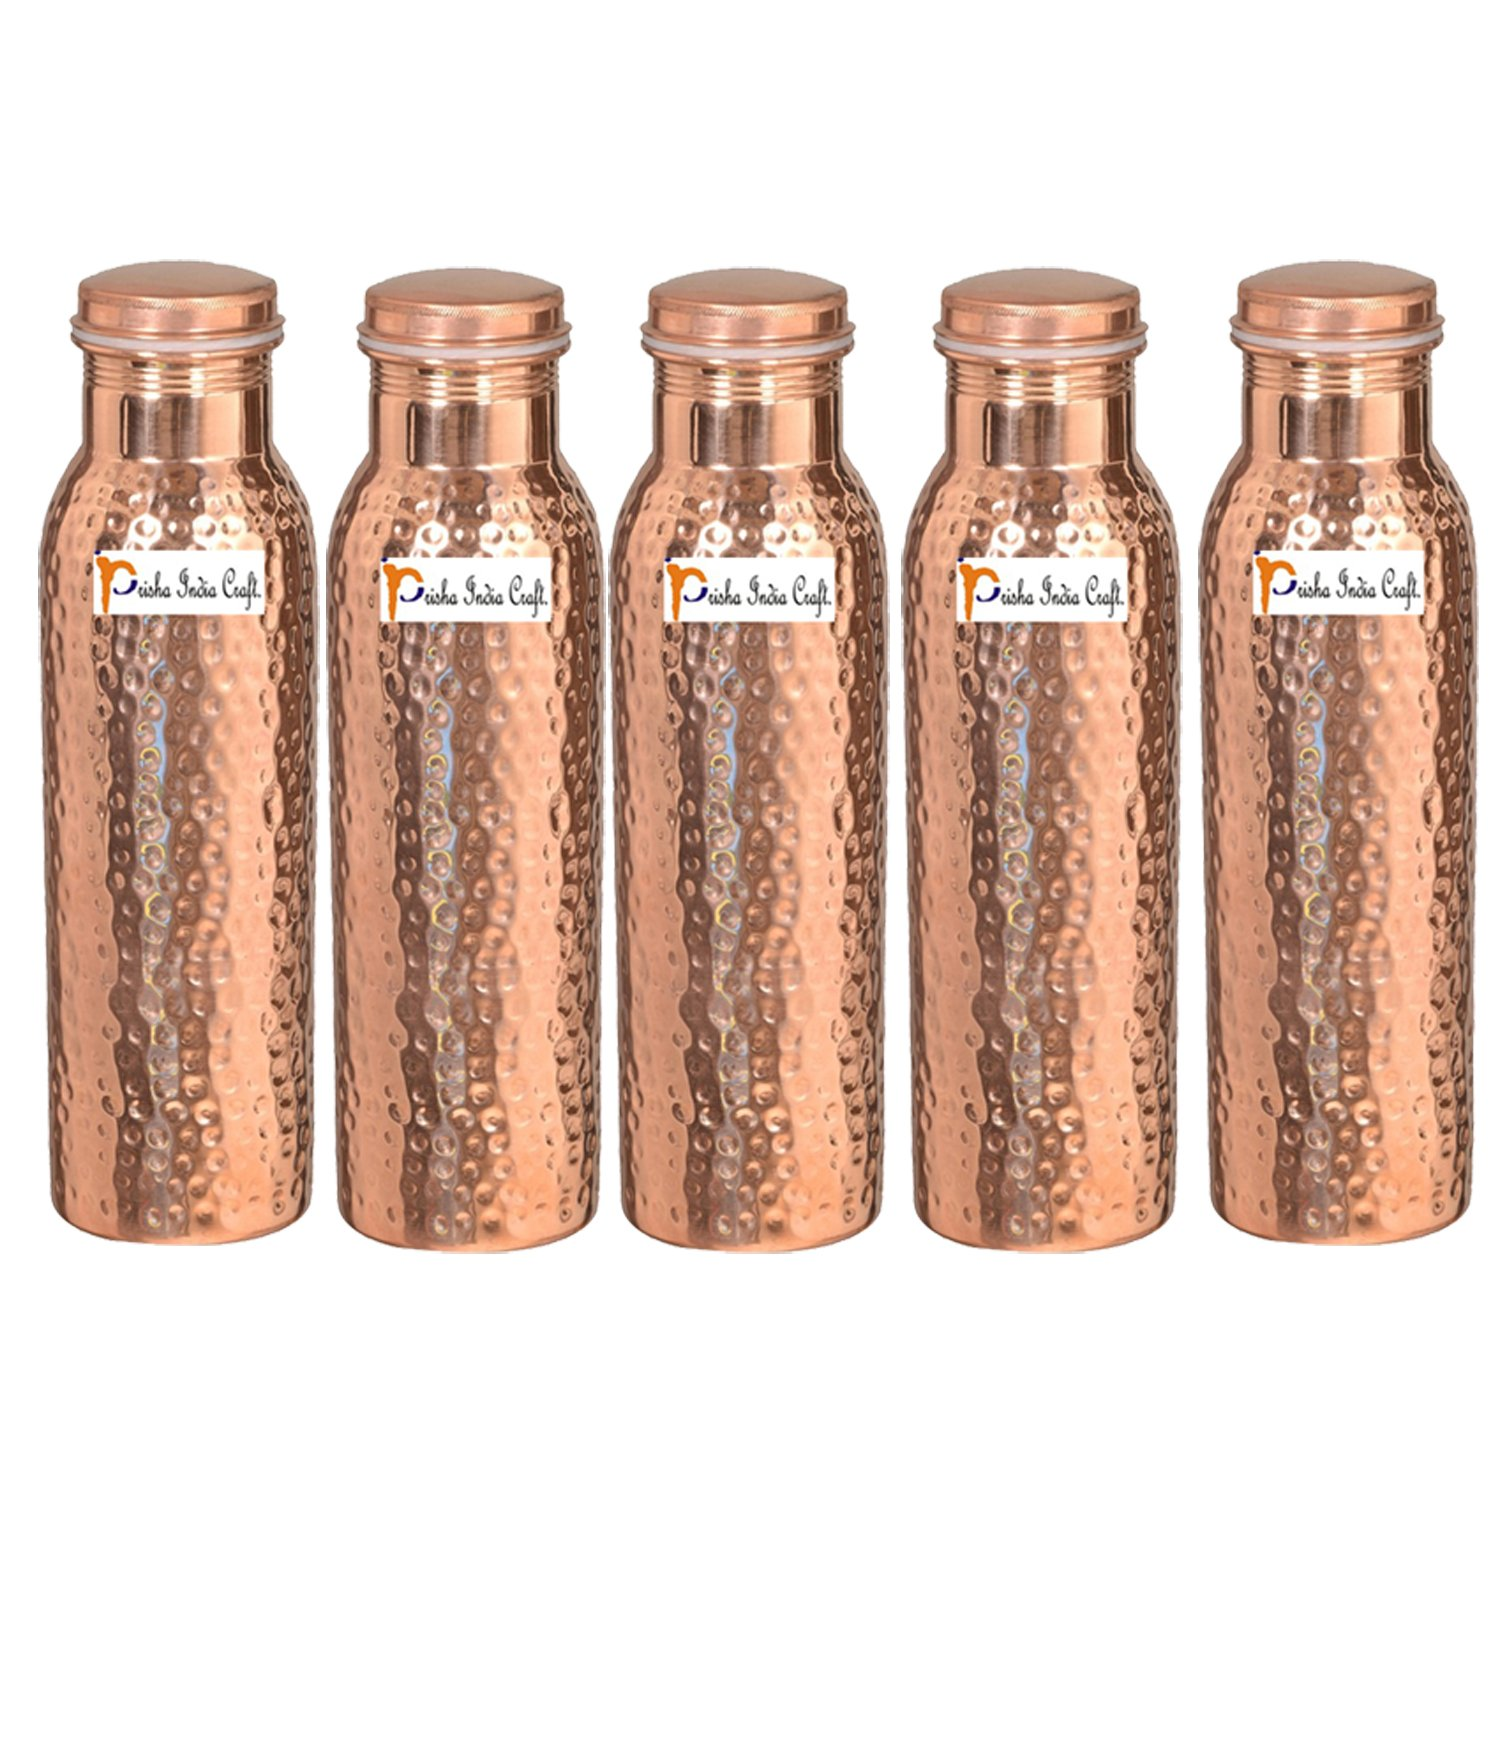 1000ml / 33.81oz - Set of 5 - Prisha India Craft - Hammered Copper Water Bottle | Joint Free, Best Quality Water Bottle - Handmade Christmas Gift